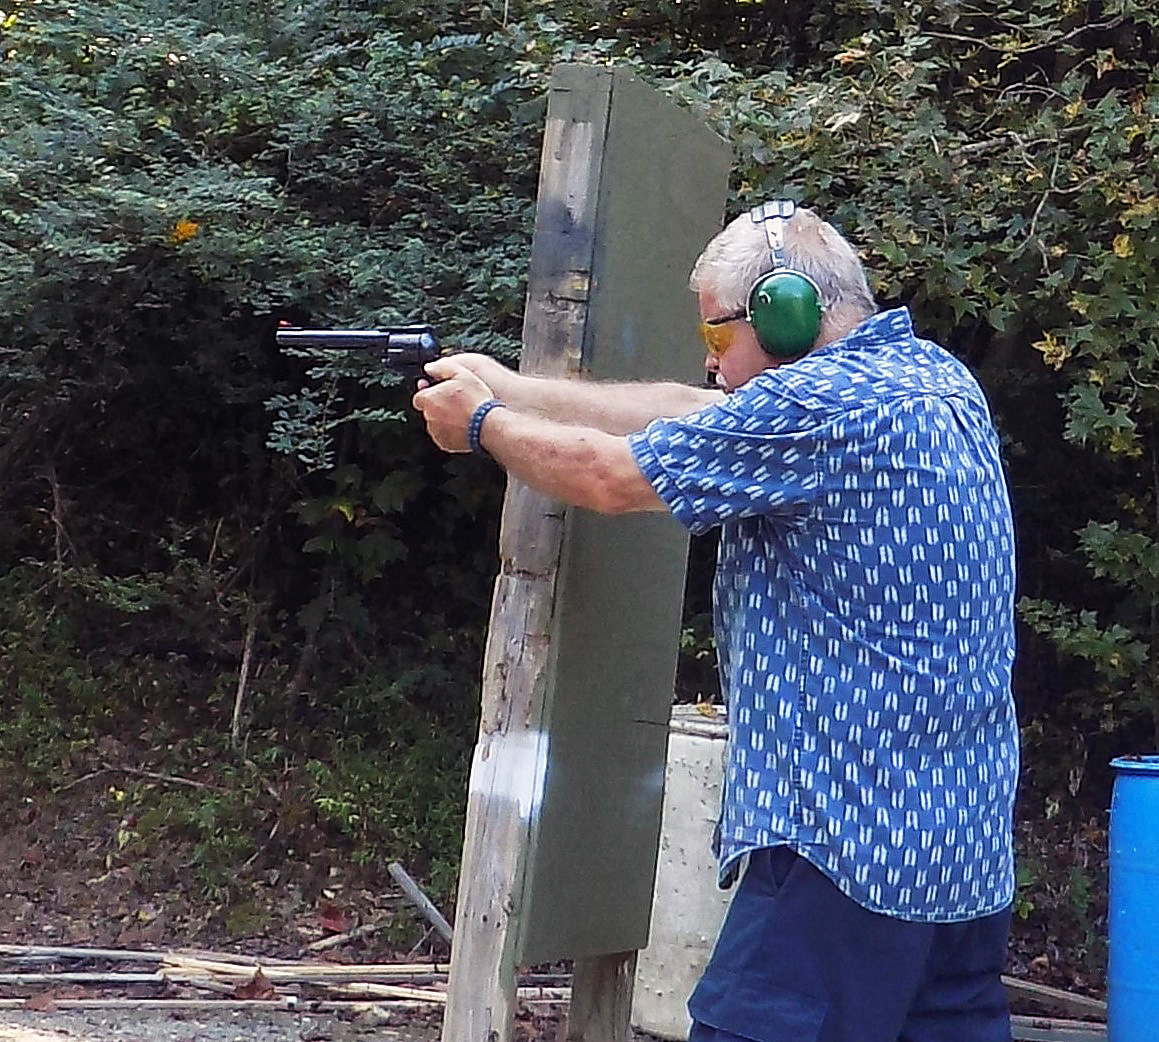 Bob Campbell shooting a .41 magnum revolver with a two-handed grip